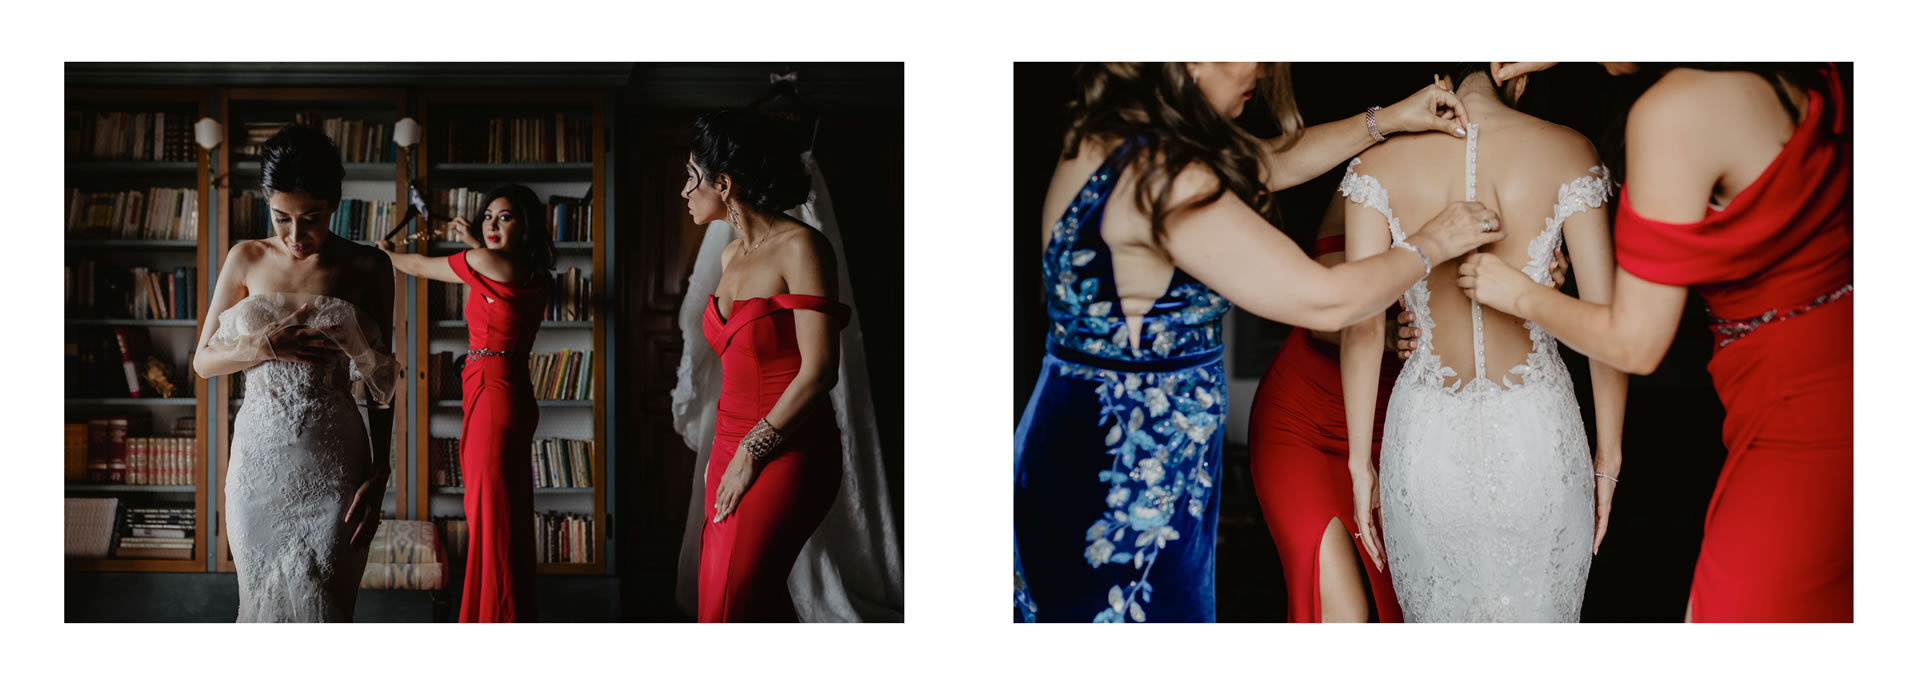 - 11 :: BEST OF 2018 WEDDING: A COLLECTION TO TELL ONE YEAR STORY :: Luxury wedding photography - 10 ::  - 11